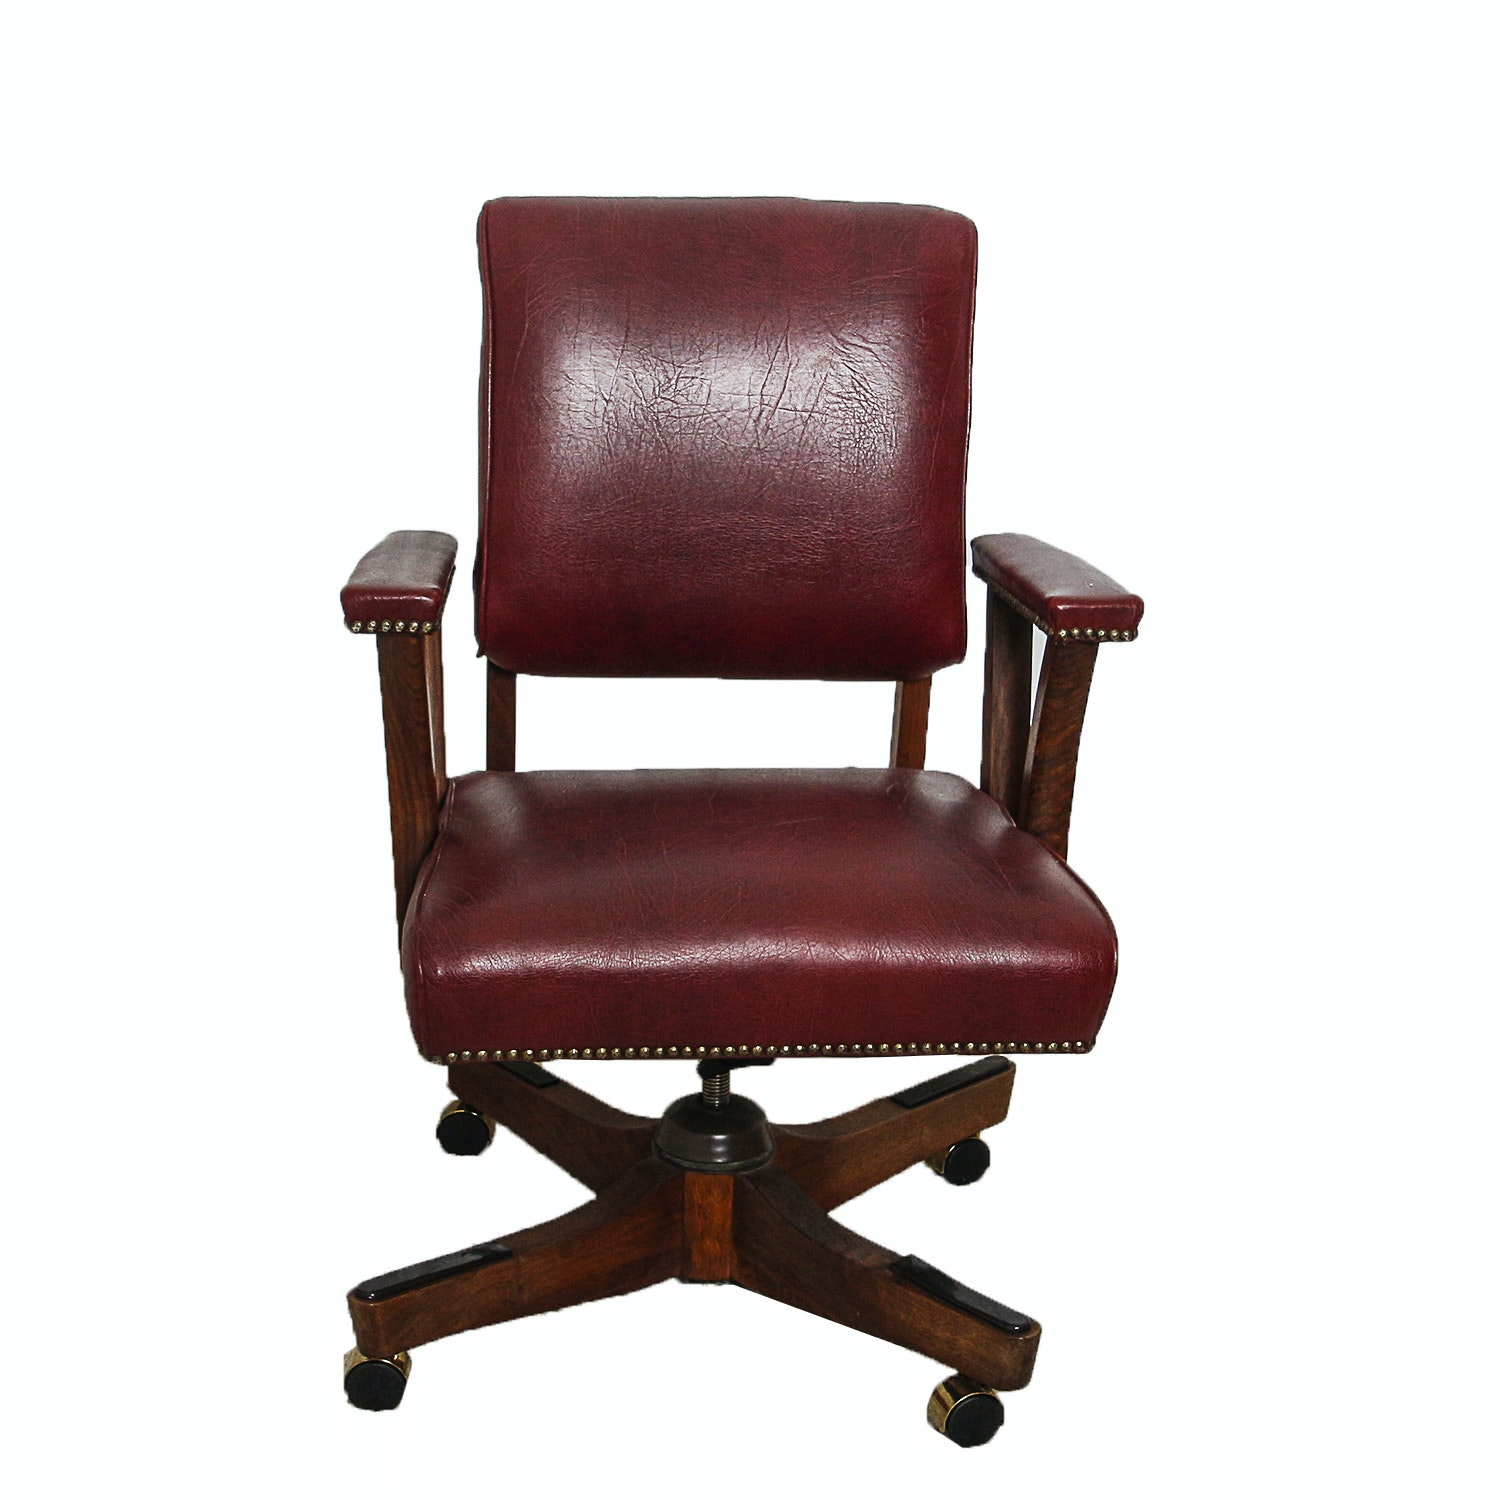 Vintage Red Vinyl Upholstered Office Rolling Chair